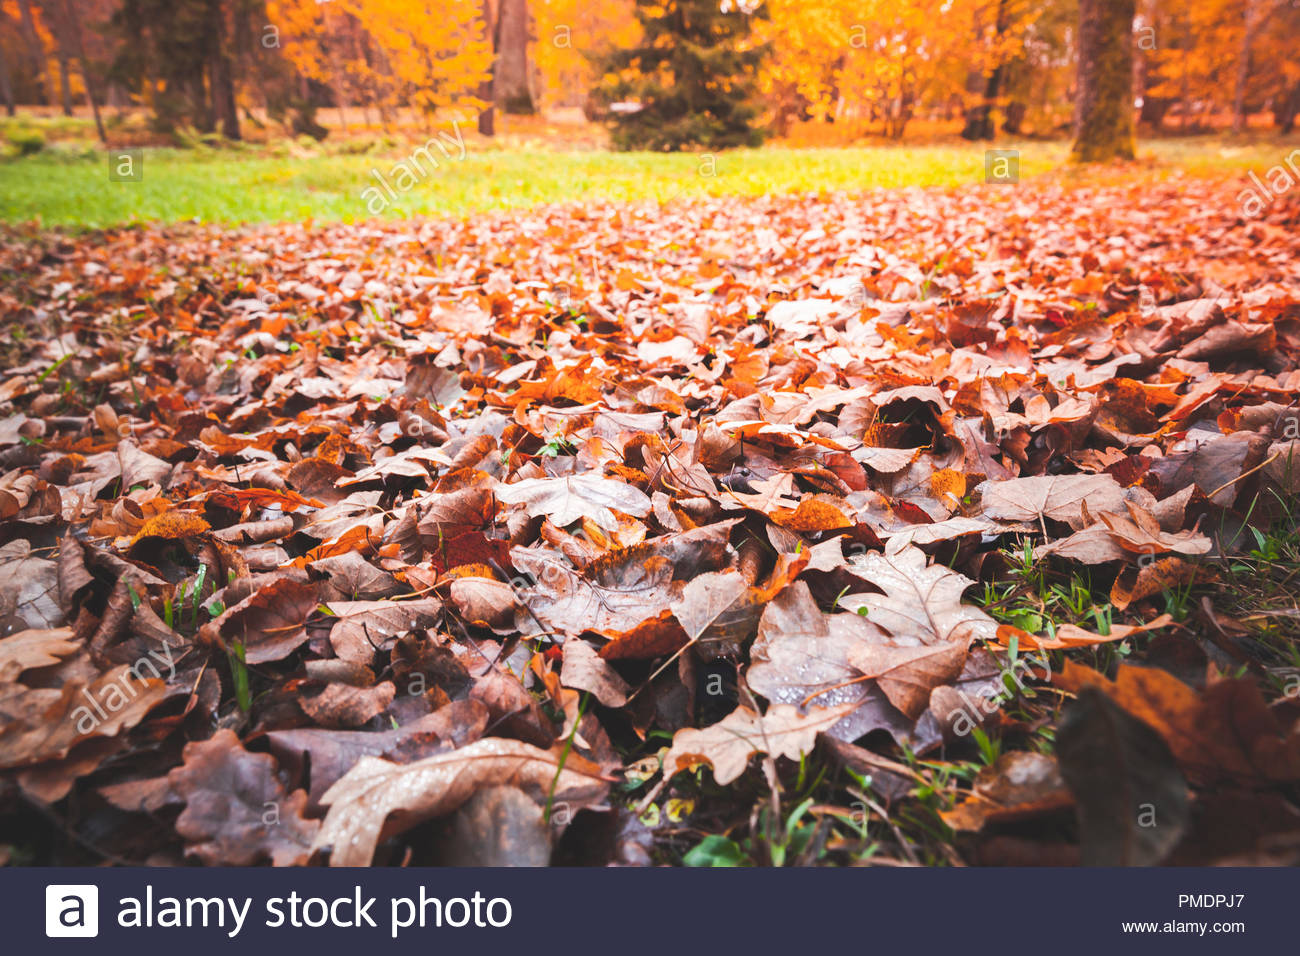 Fallen red oak tree leaves lay over lawn in park Natural autumn 1300x956